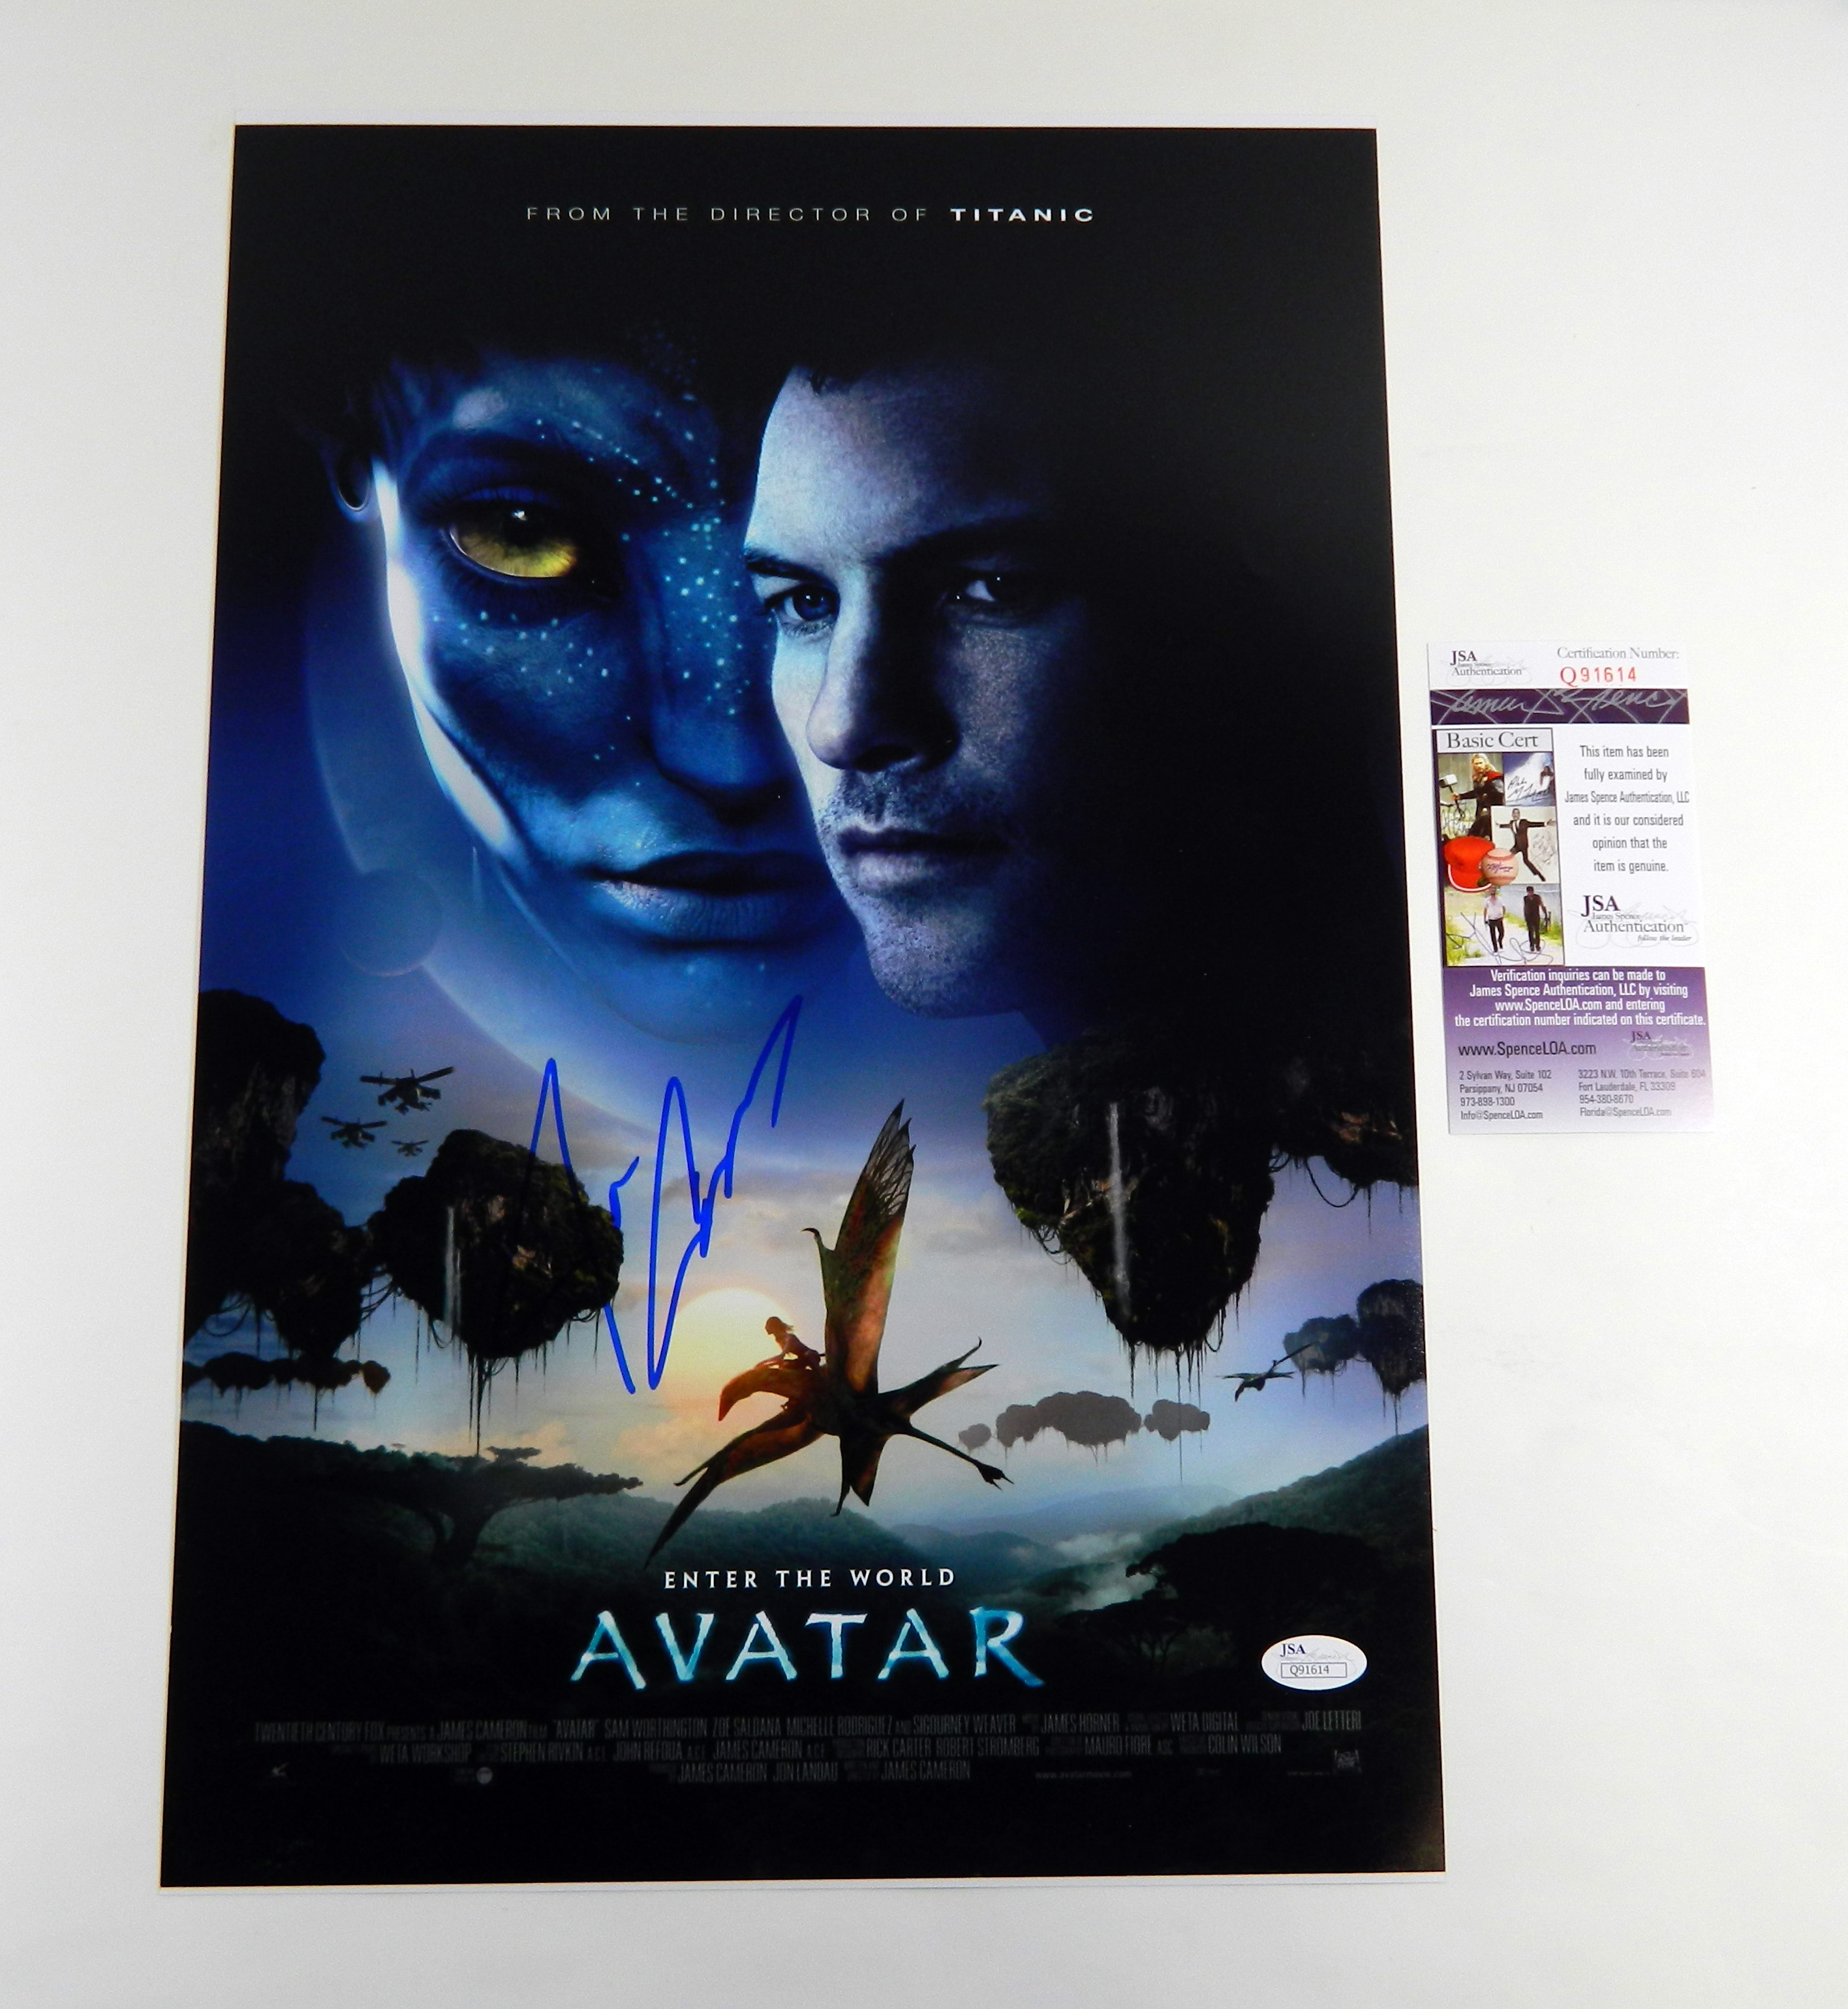 Avatar 2 Poster: James Cameron Signed 12x18 Movie Poster Photo Avatar JSA